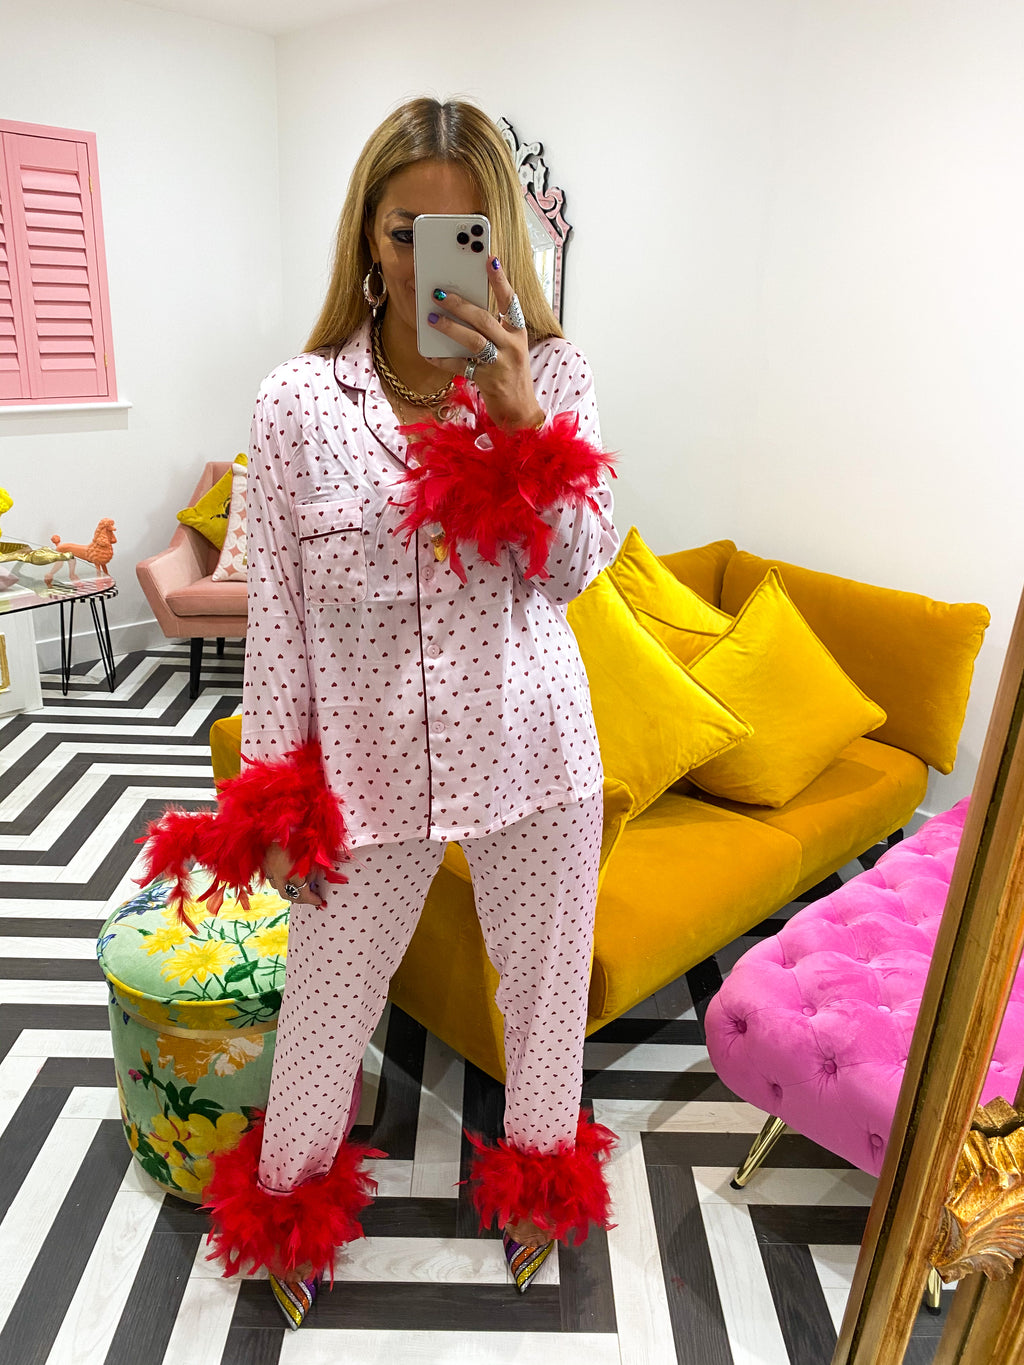 RED HEART FEATHER CUFF PJ'S IN PINK